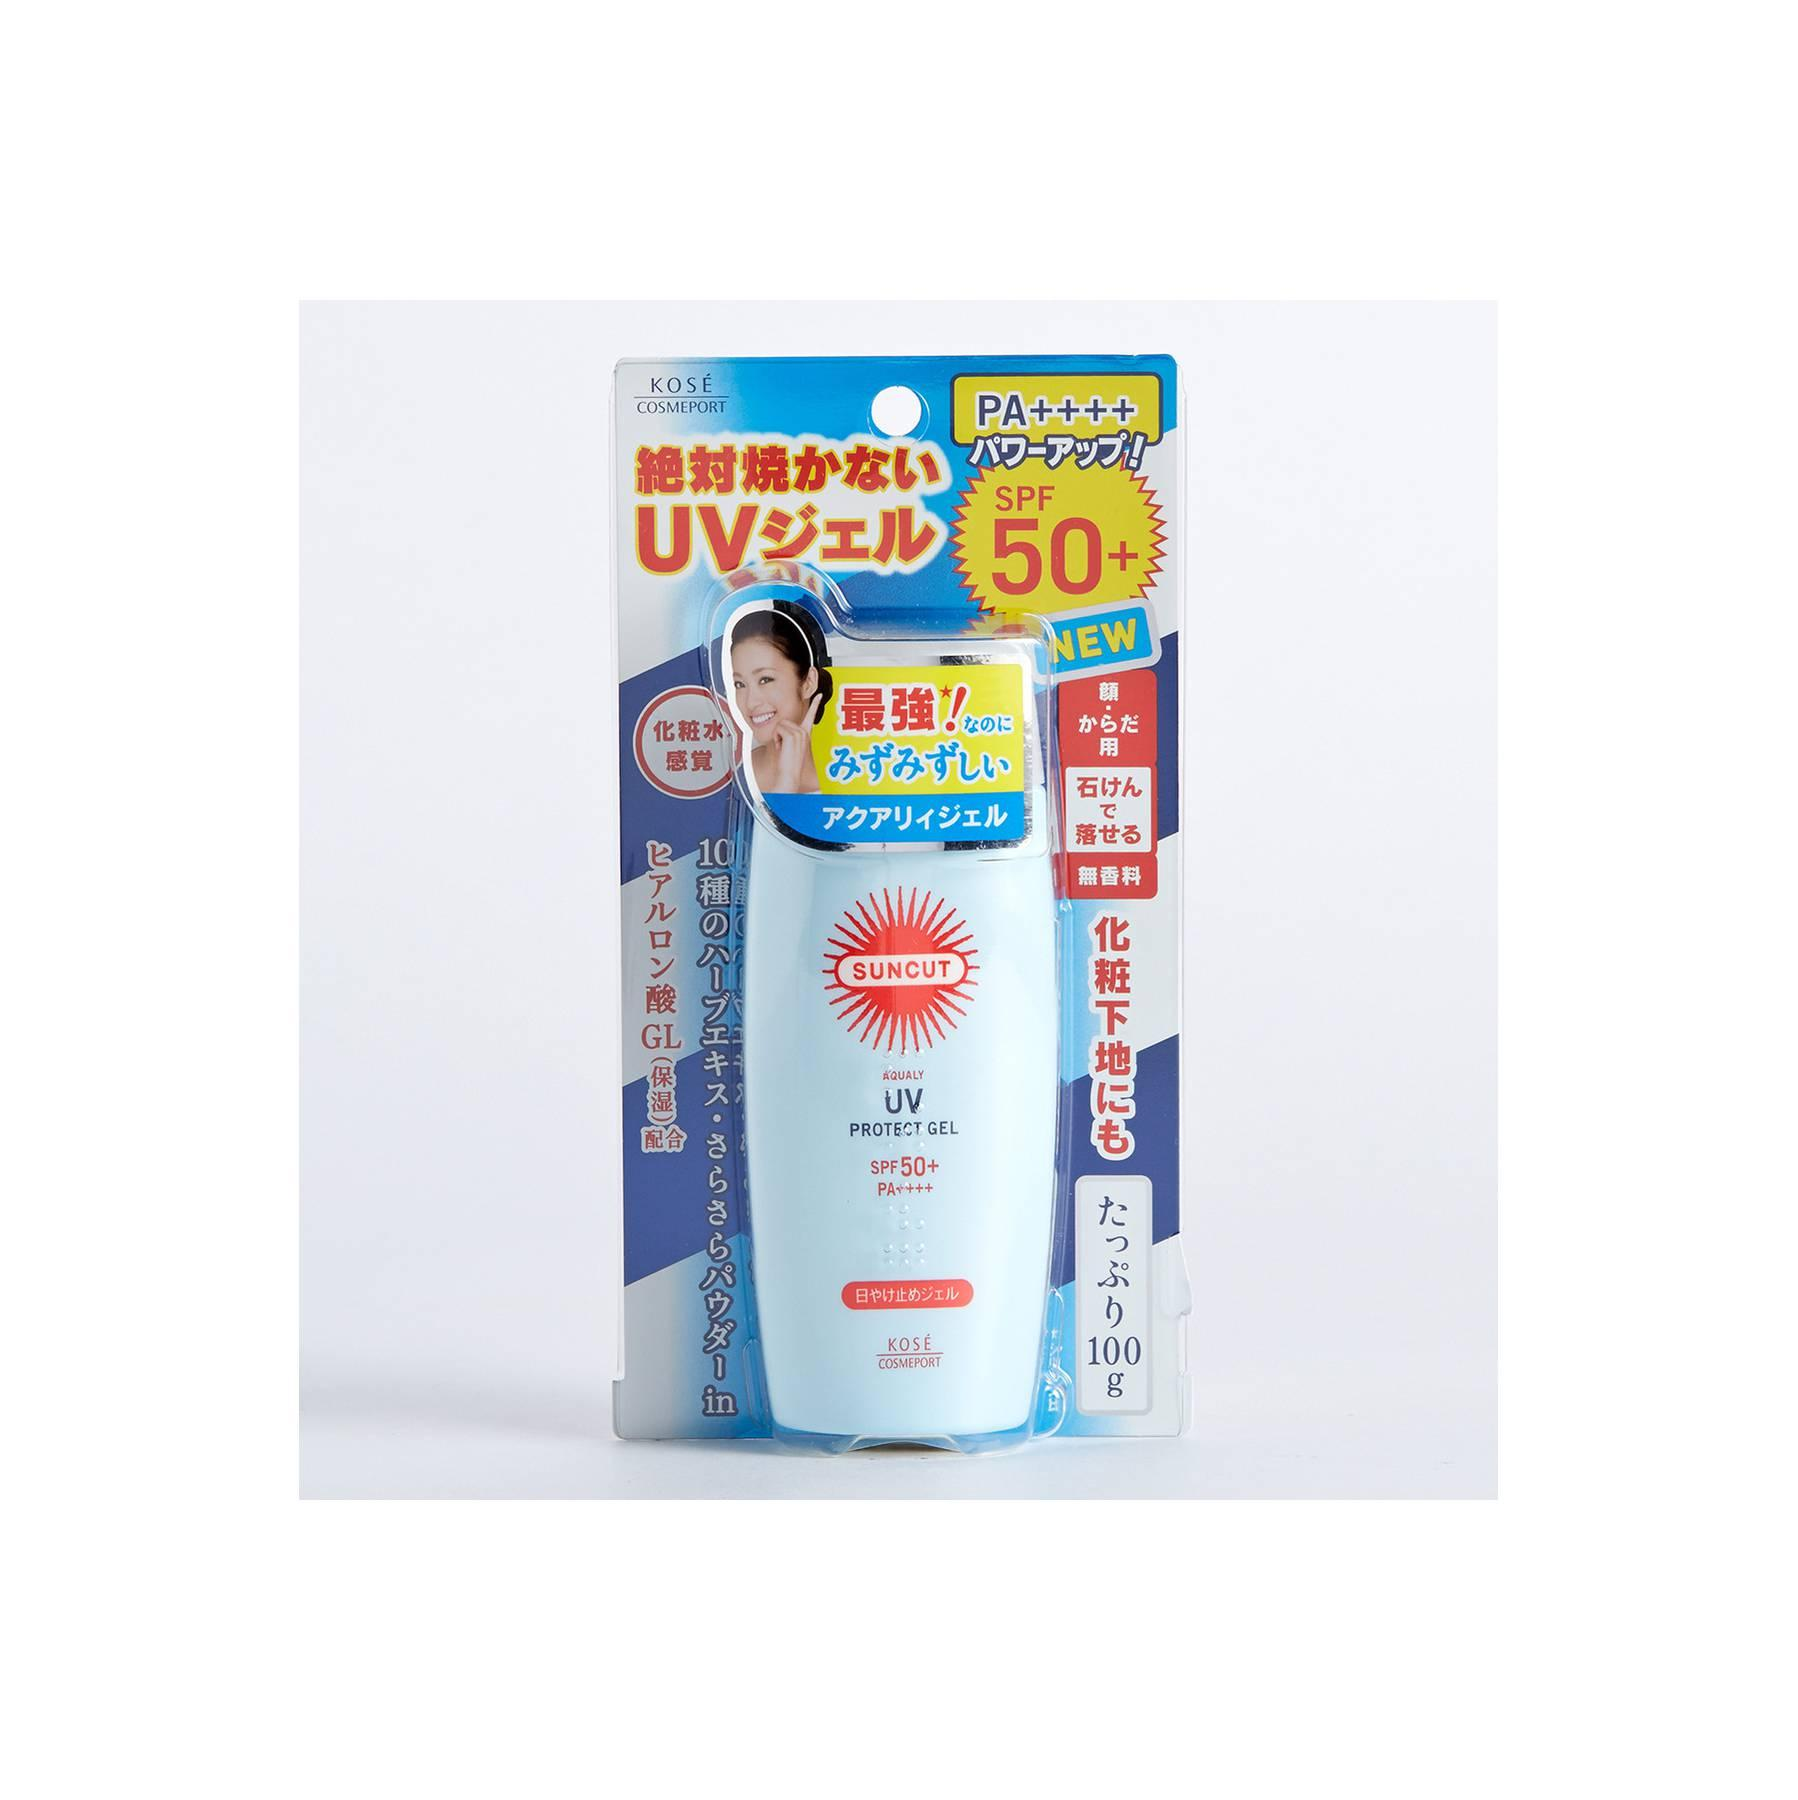 Japan Import Kose Cosmeport Suncut Aqualy UV Protect GEL SPF 50+ 100g